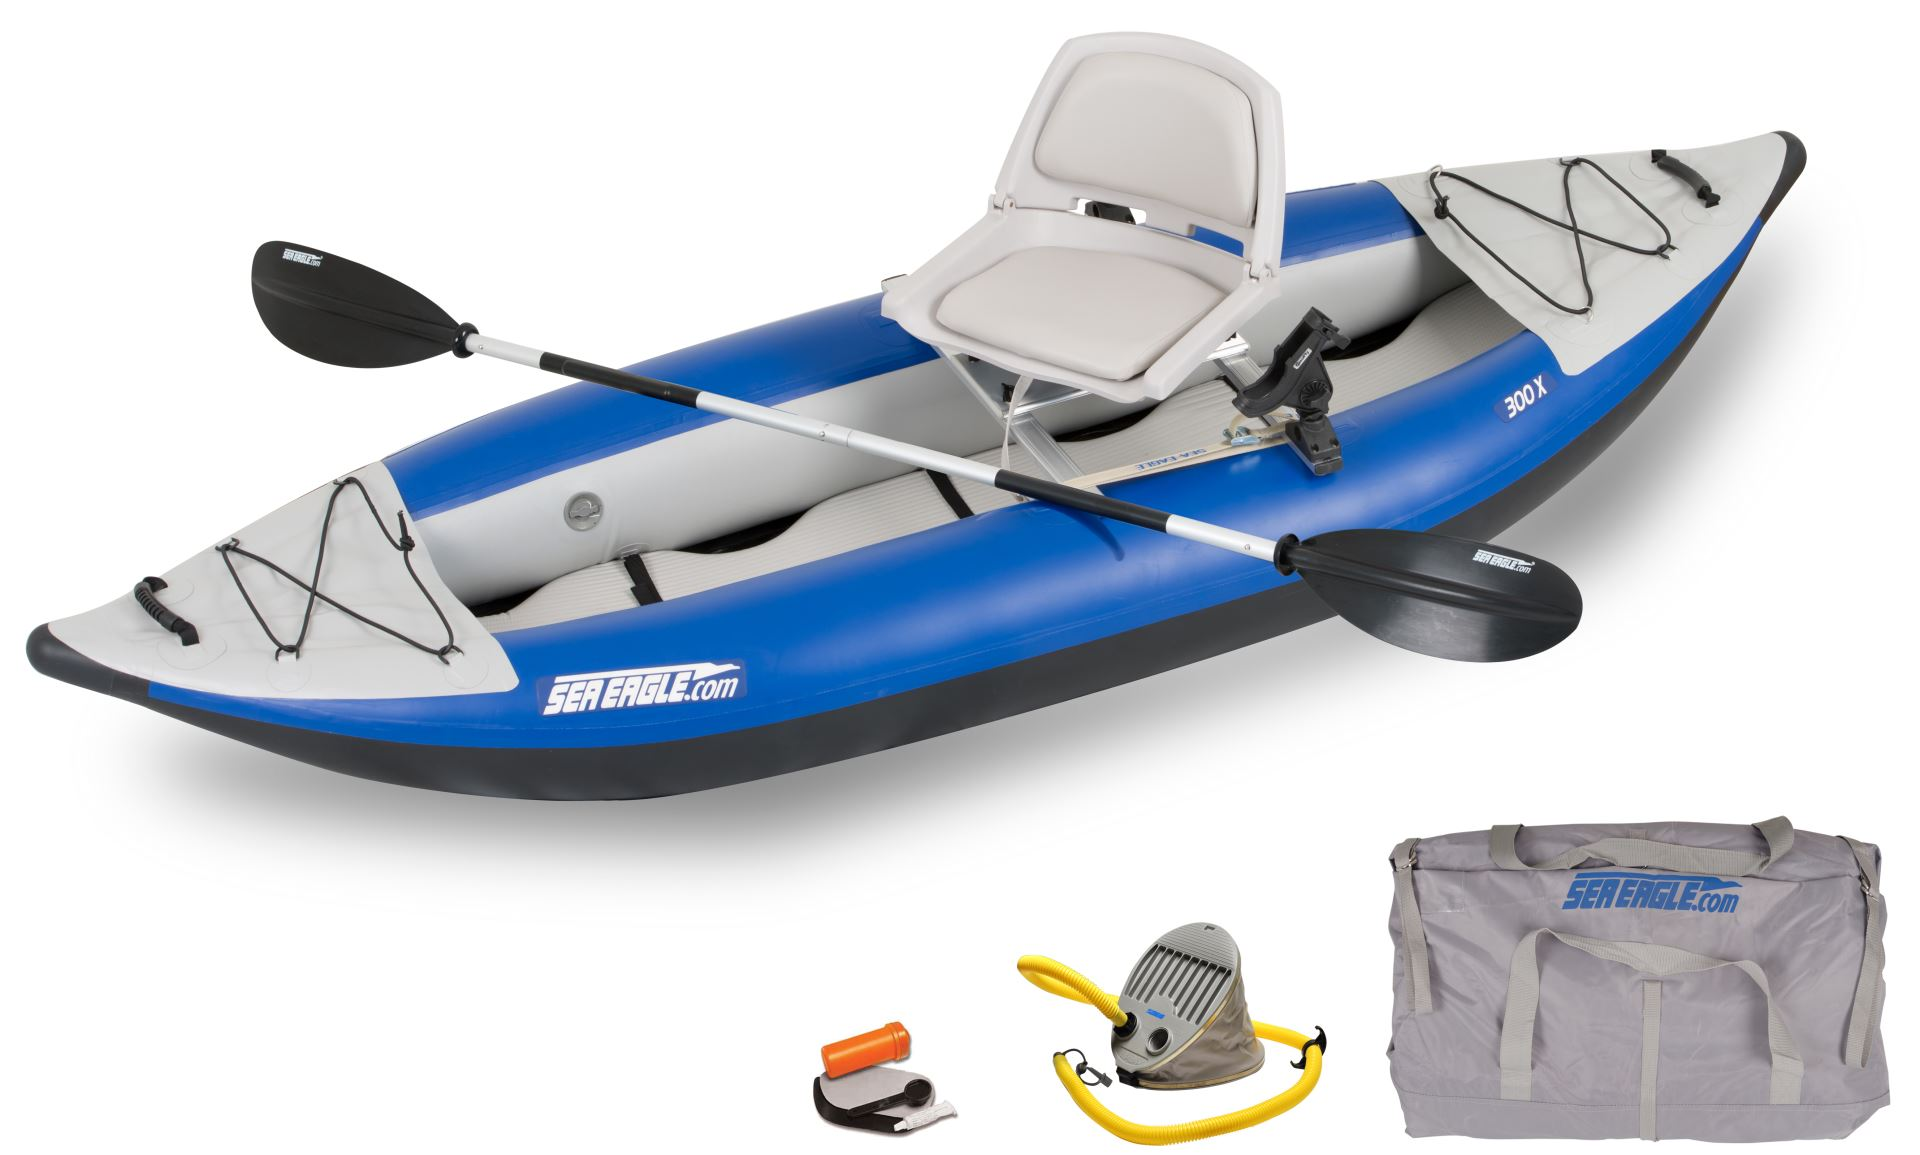 Sea eagle 300x 1 person inflatable kayaks package prices for Kayak fishing seats